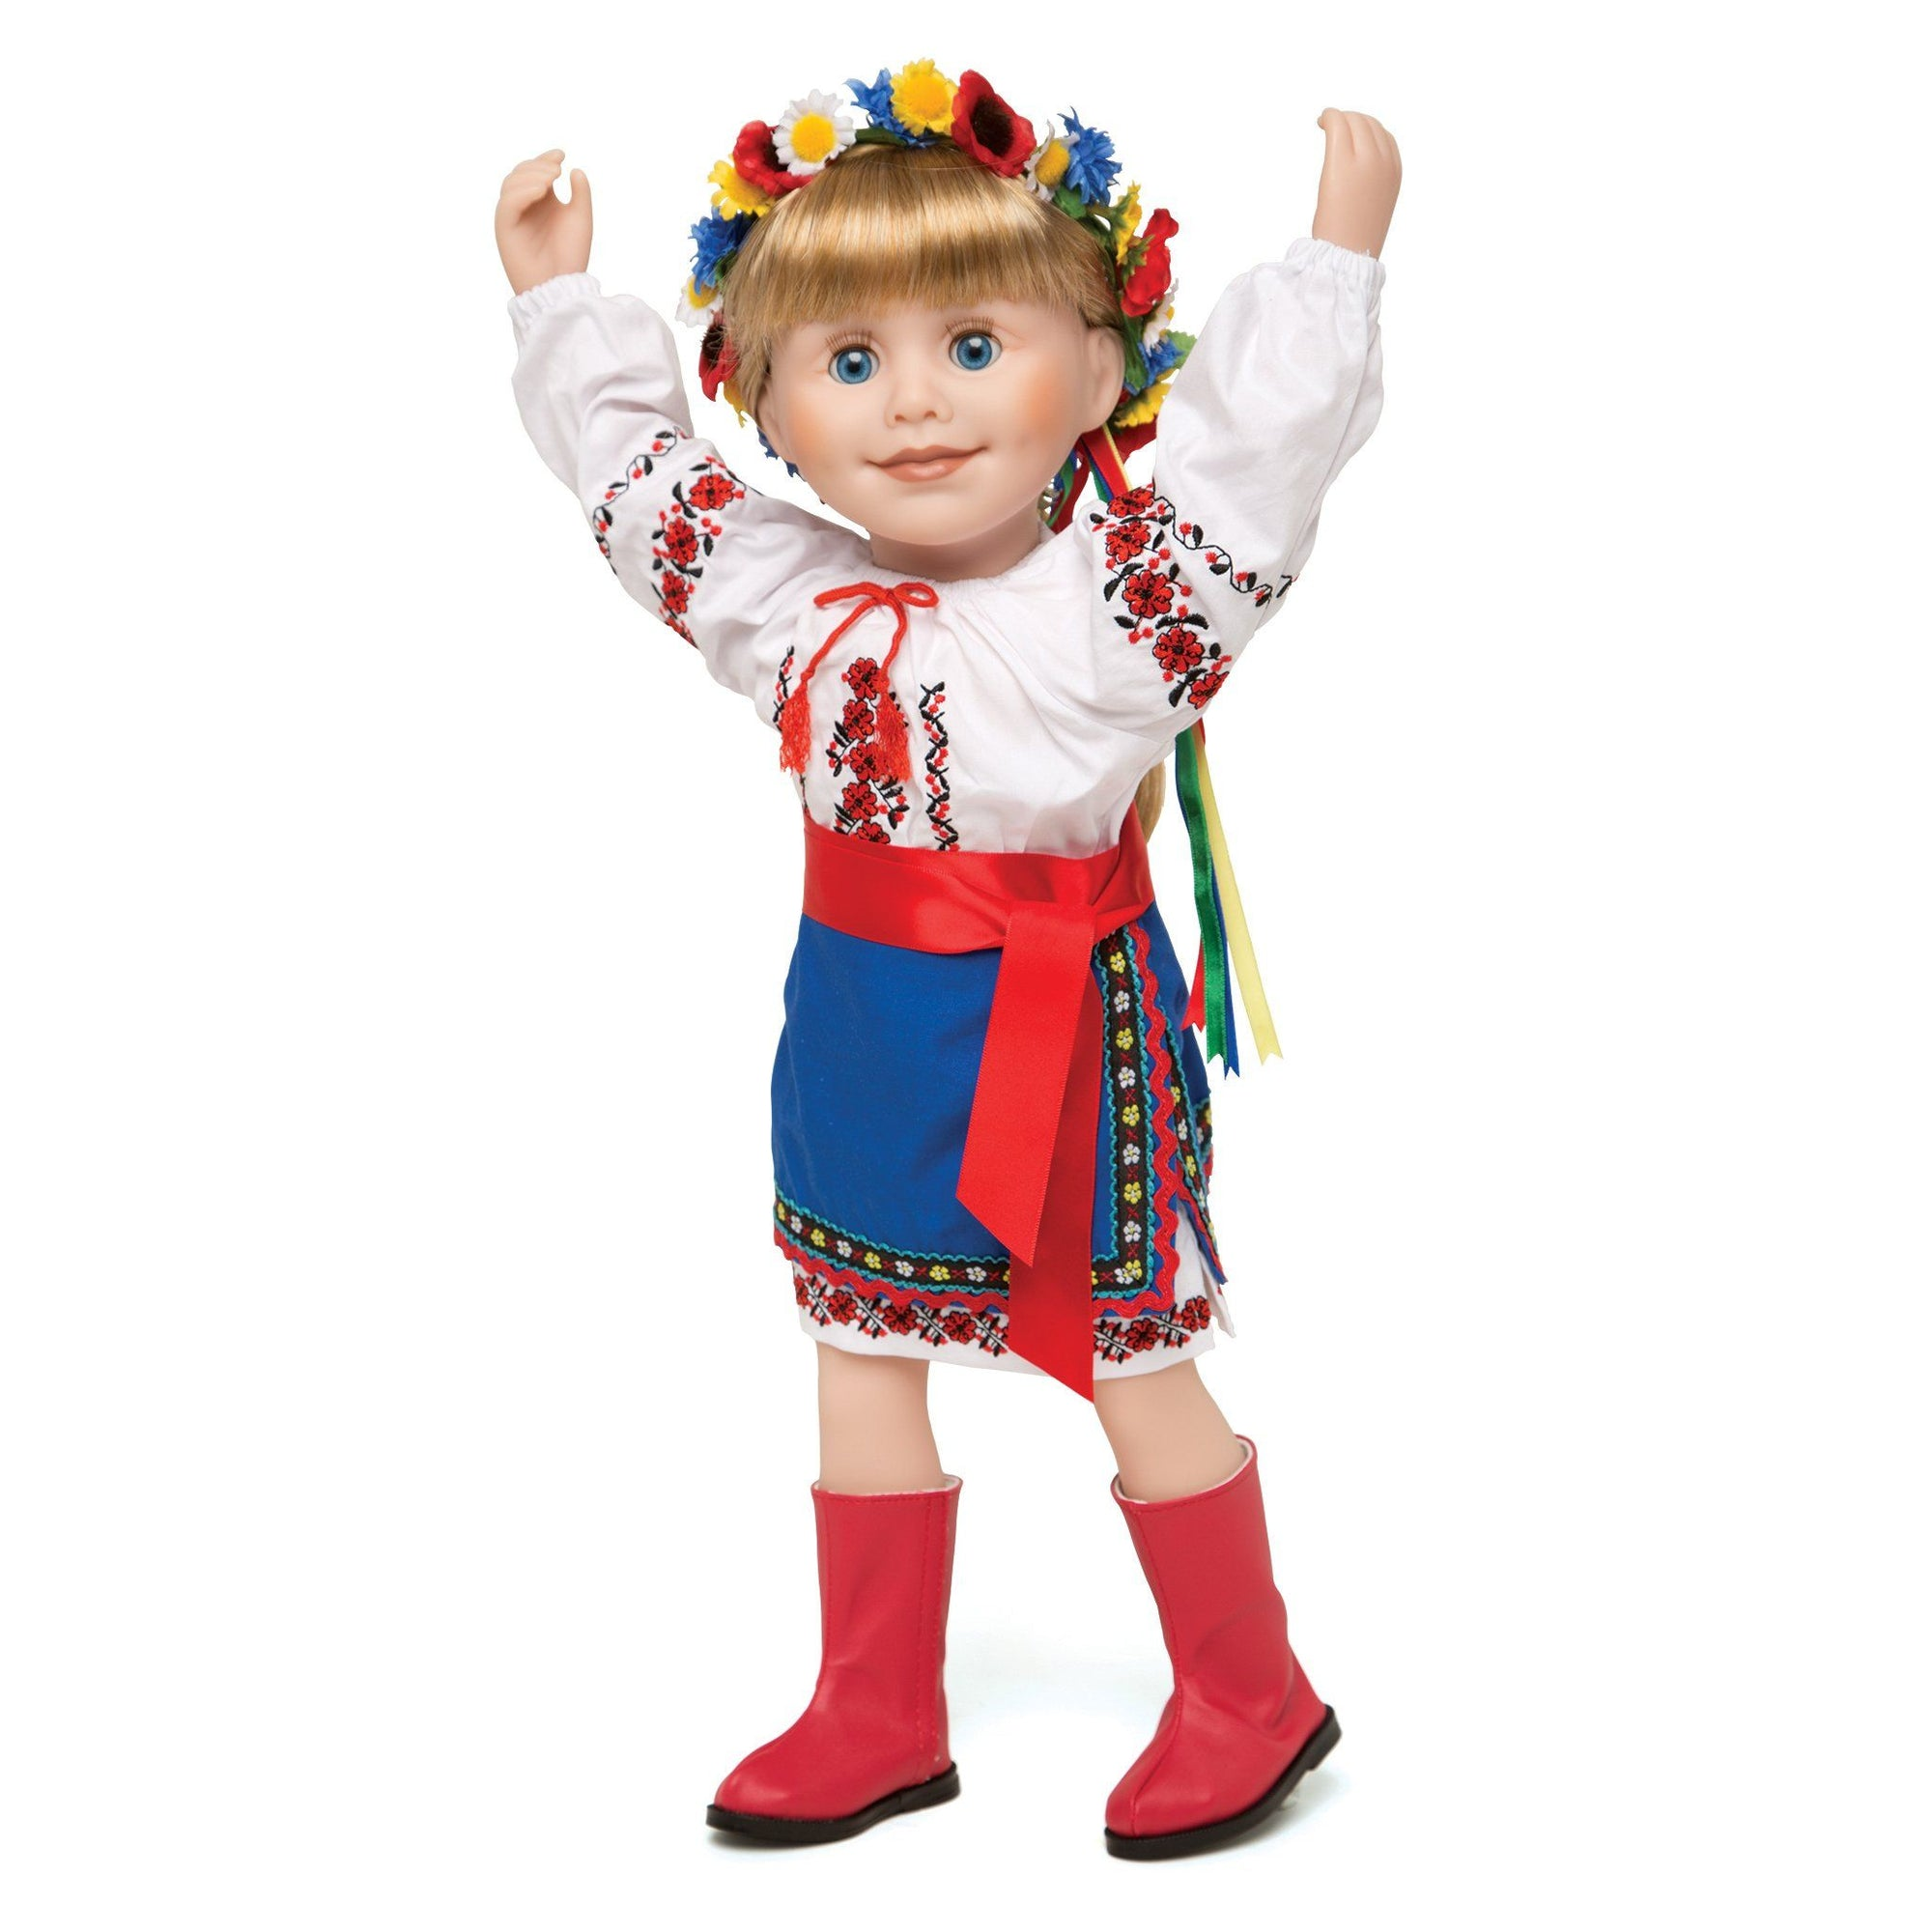 Ukrainian Dance outfit traditional embroidered blouse, underskirt, blue apron with red sash belt, floral wreath, red boots  fits all 18 inch dolls.